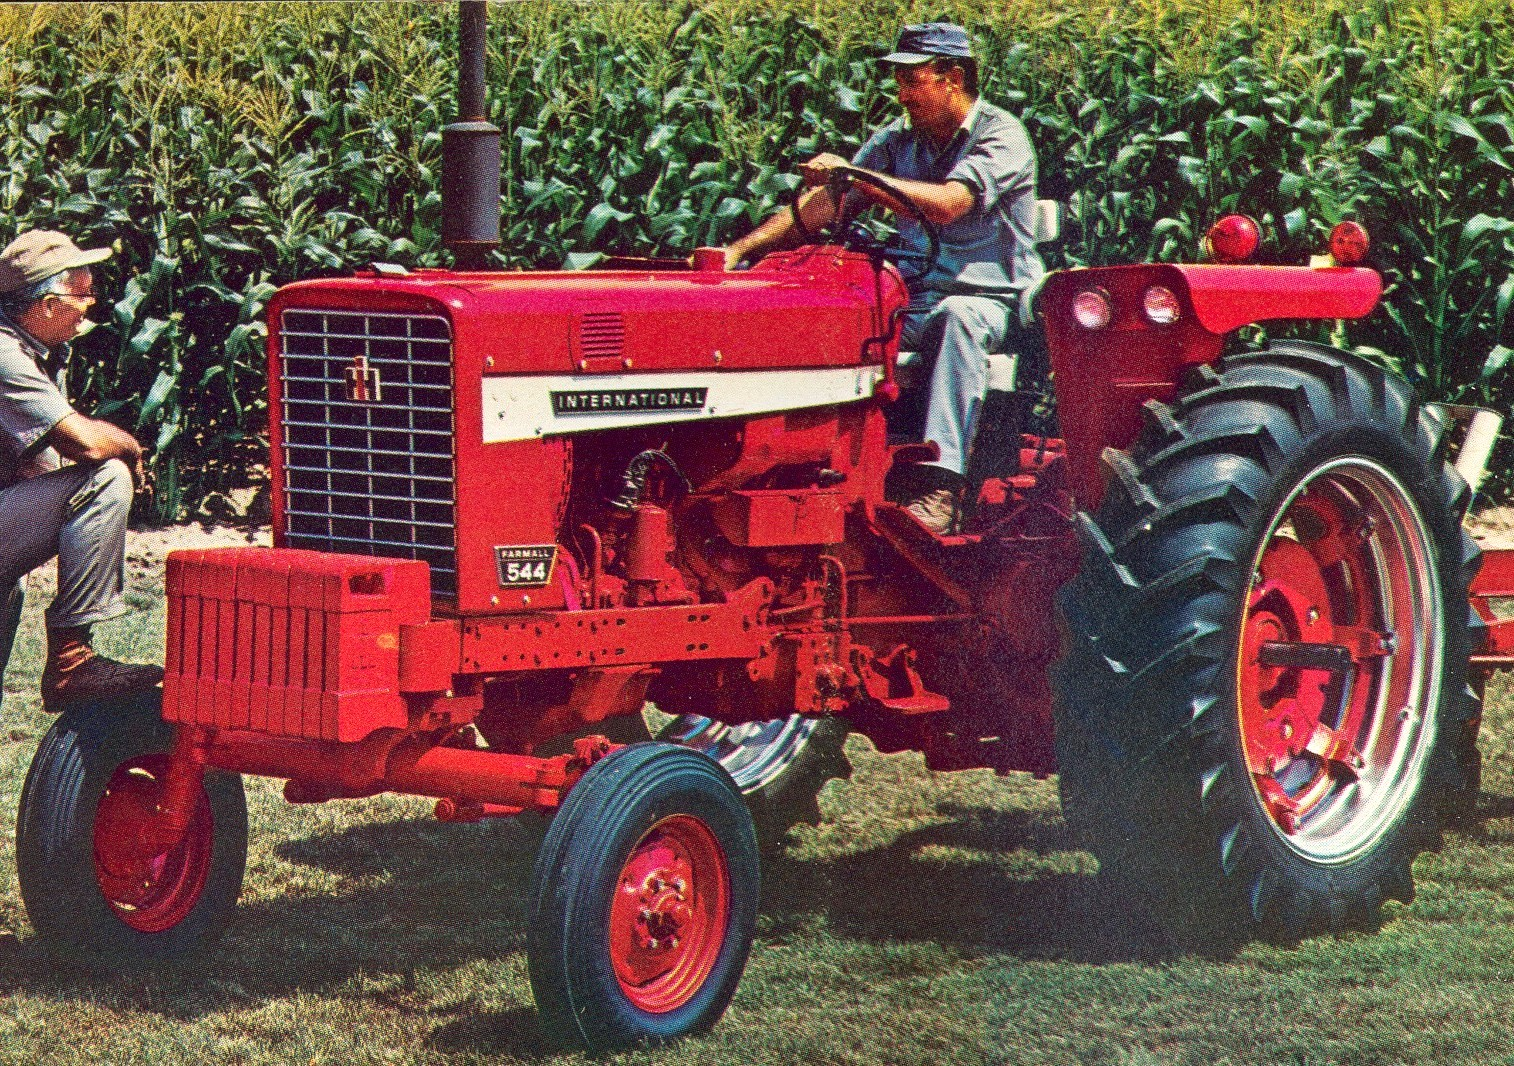 Wiring Diagram For Farmall 656 Schematic Exelent International Tractor Image H Generator